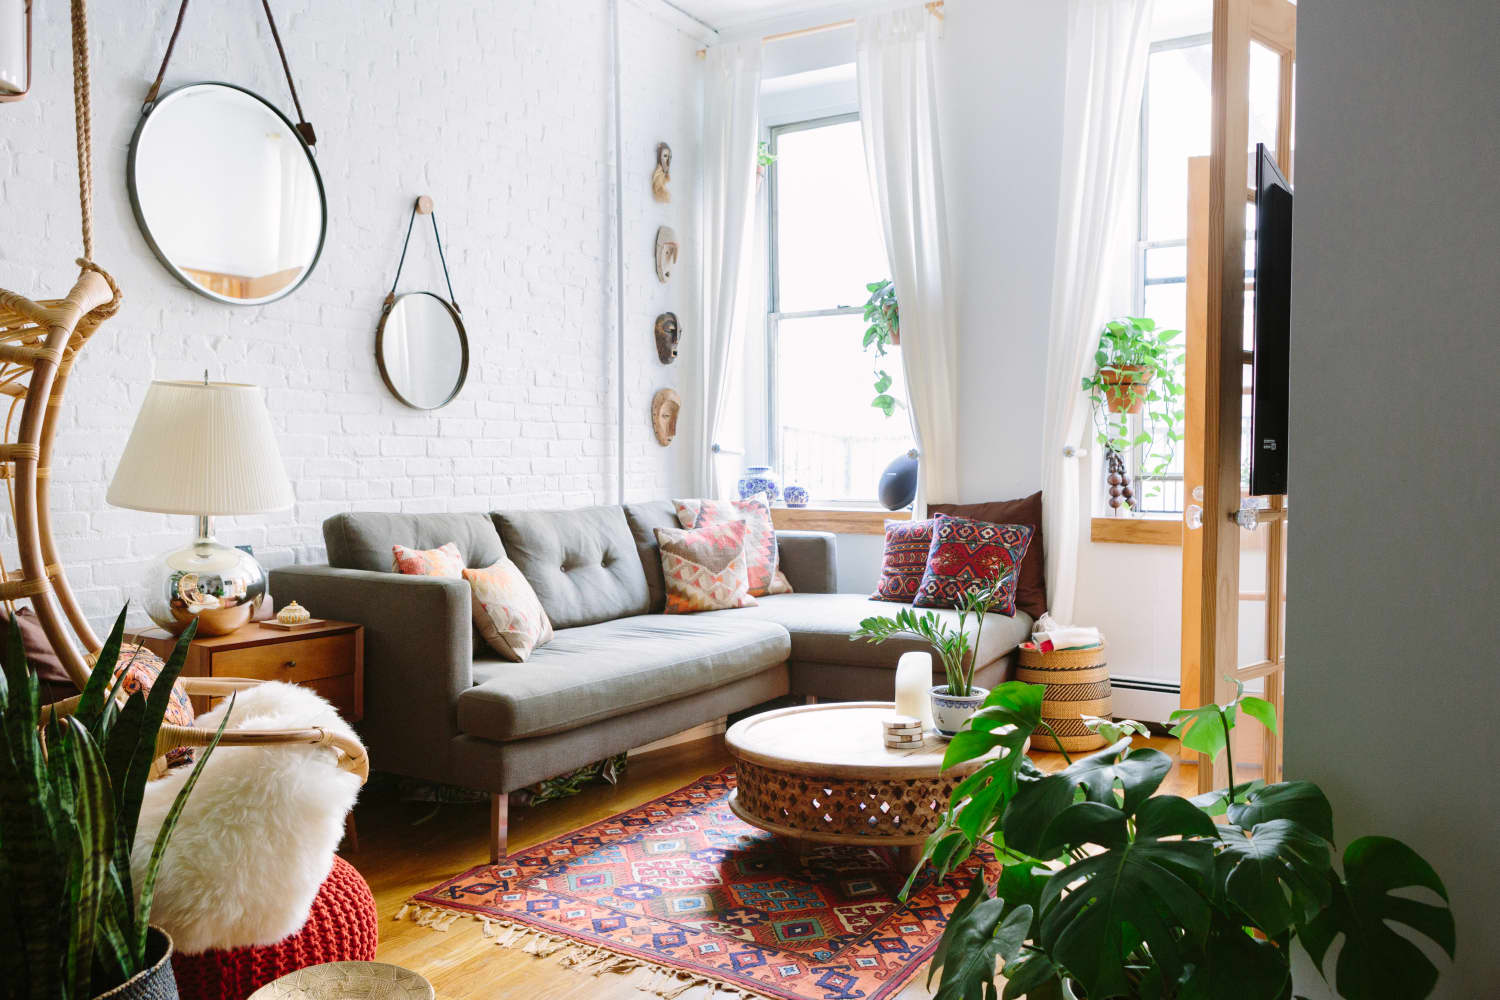 The Under $10 Item You Should Always Buy for Your Home, According to a Real Estate Agent